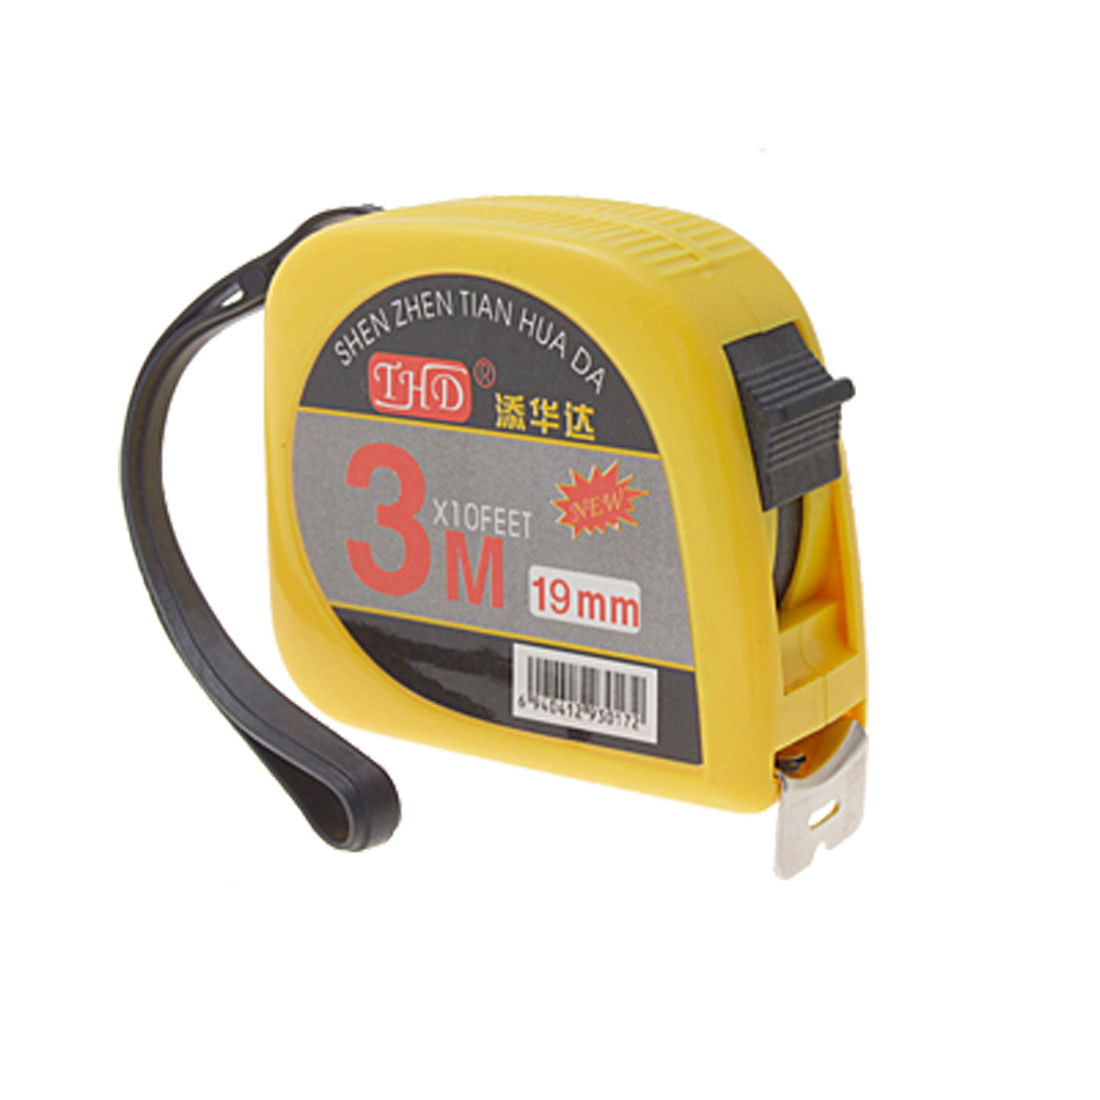 Retractable 3 Meters Long Steel Tape Measure Measuring Tool Yellow Black